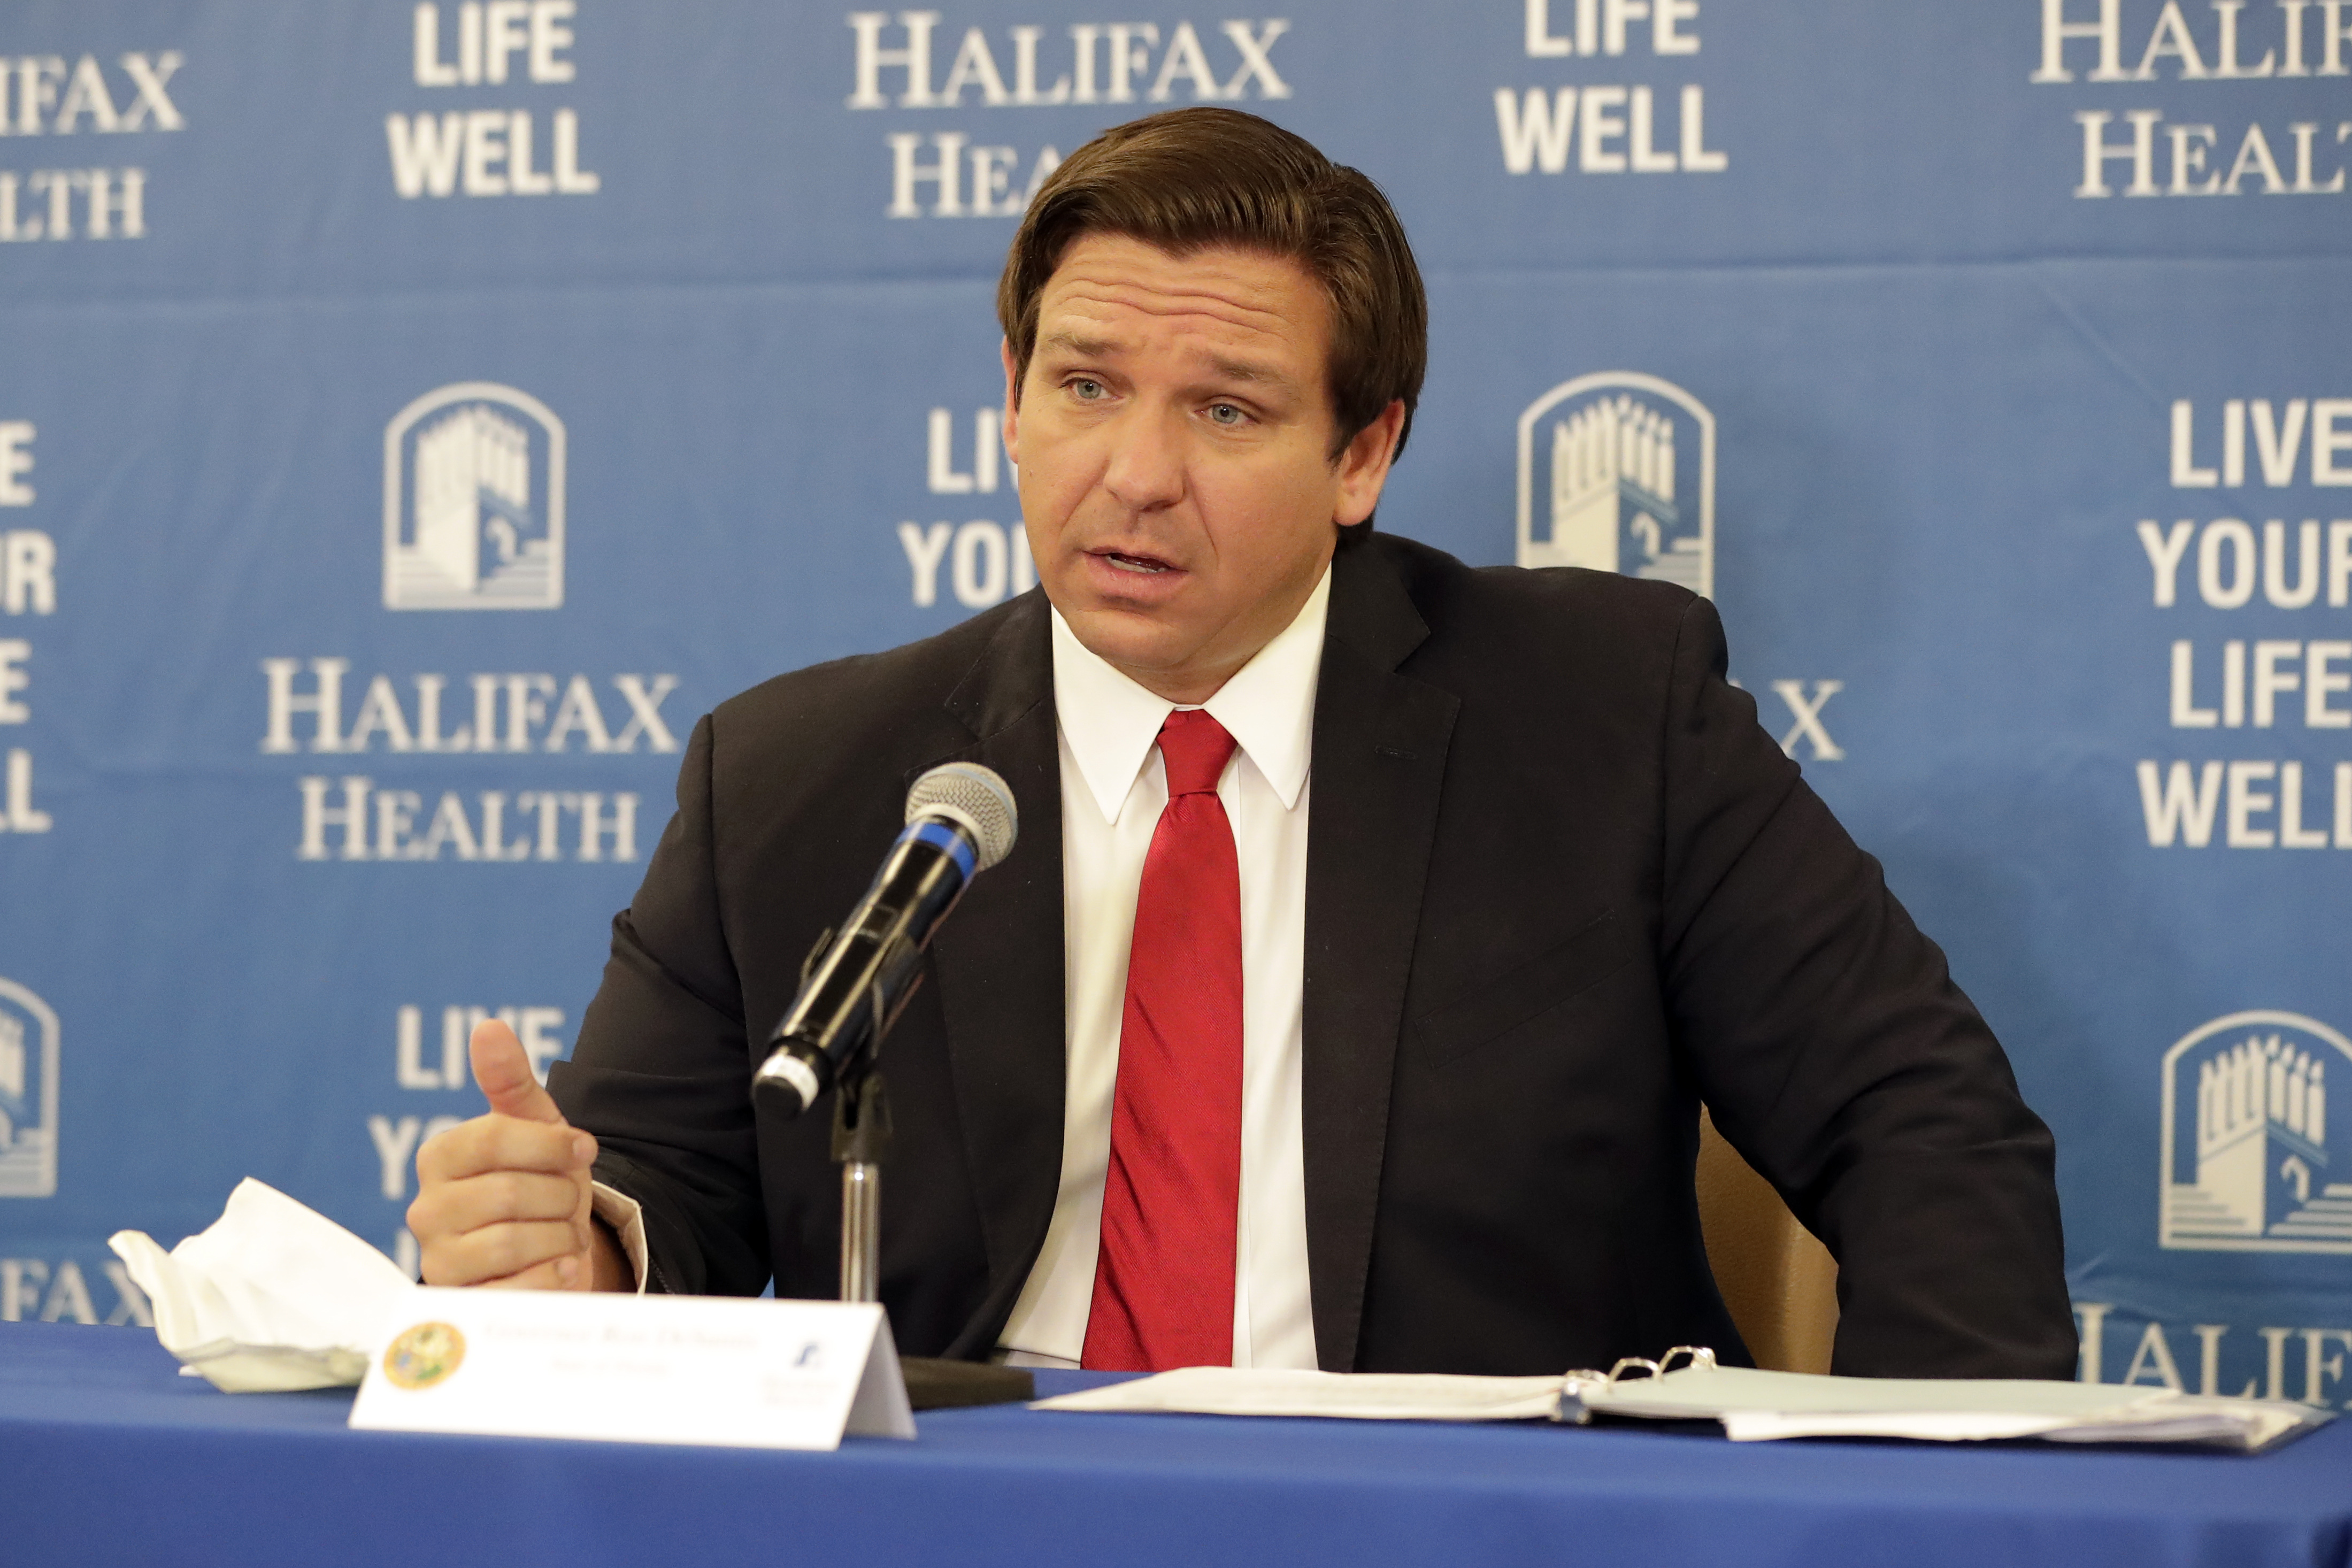 Florida Gov. Ron DeSantis speaks at a news conference at Halifax Health Medical Center in Daytona Beach, Florida, on May 3.